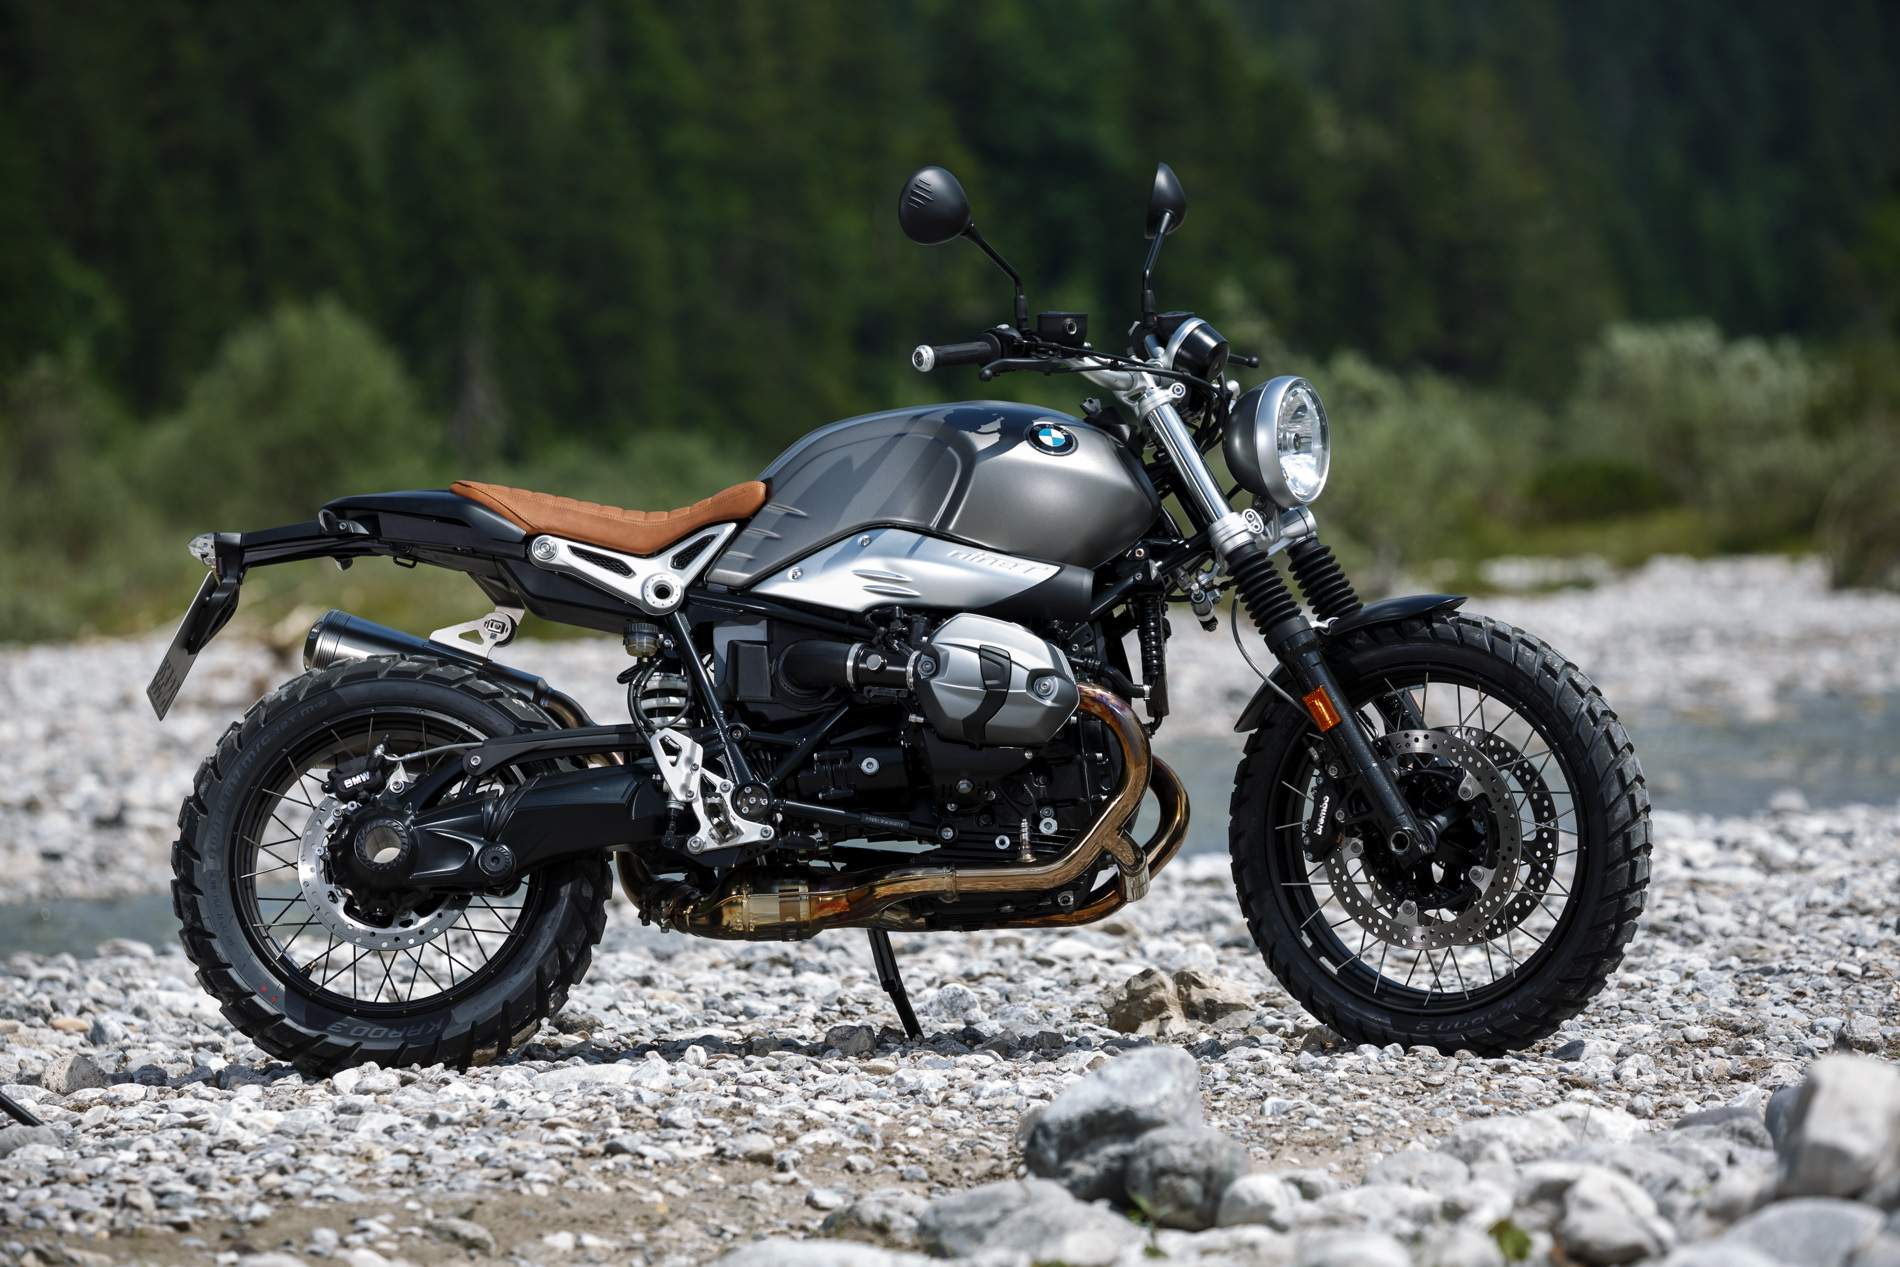 New R Ninet Scrambler U S Price Announced